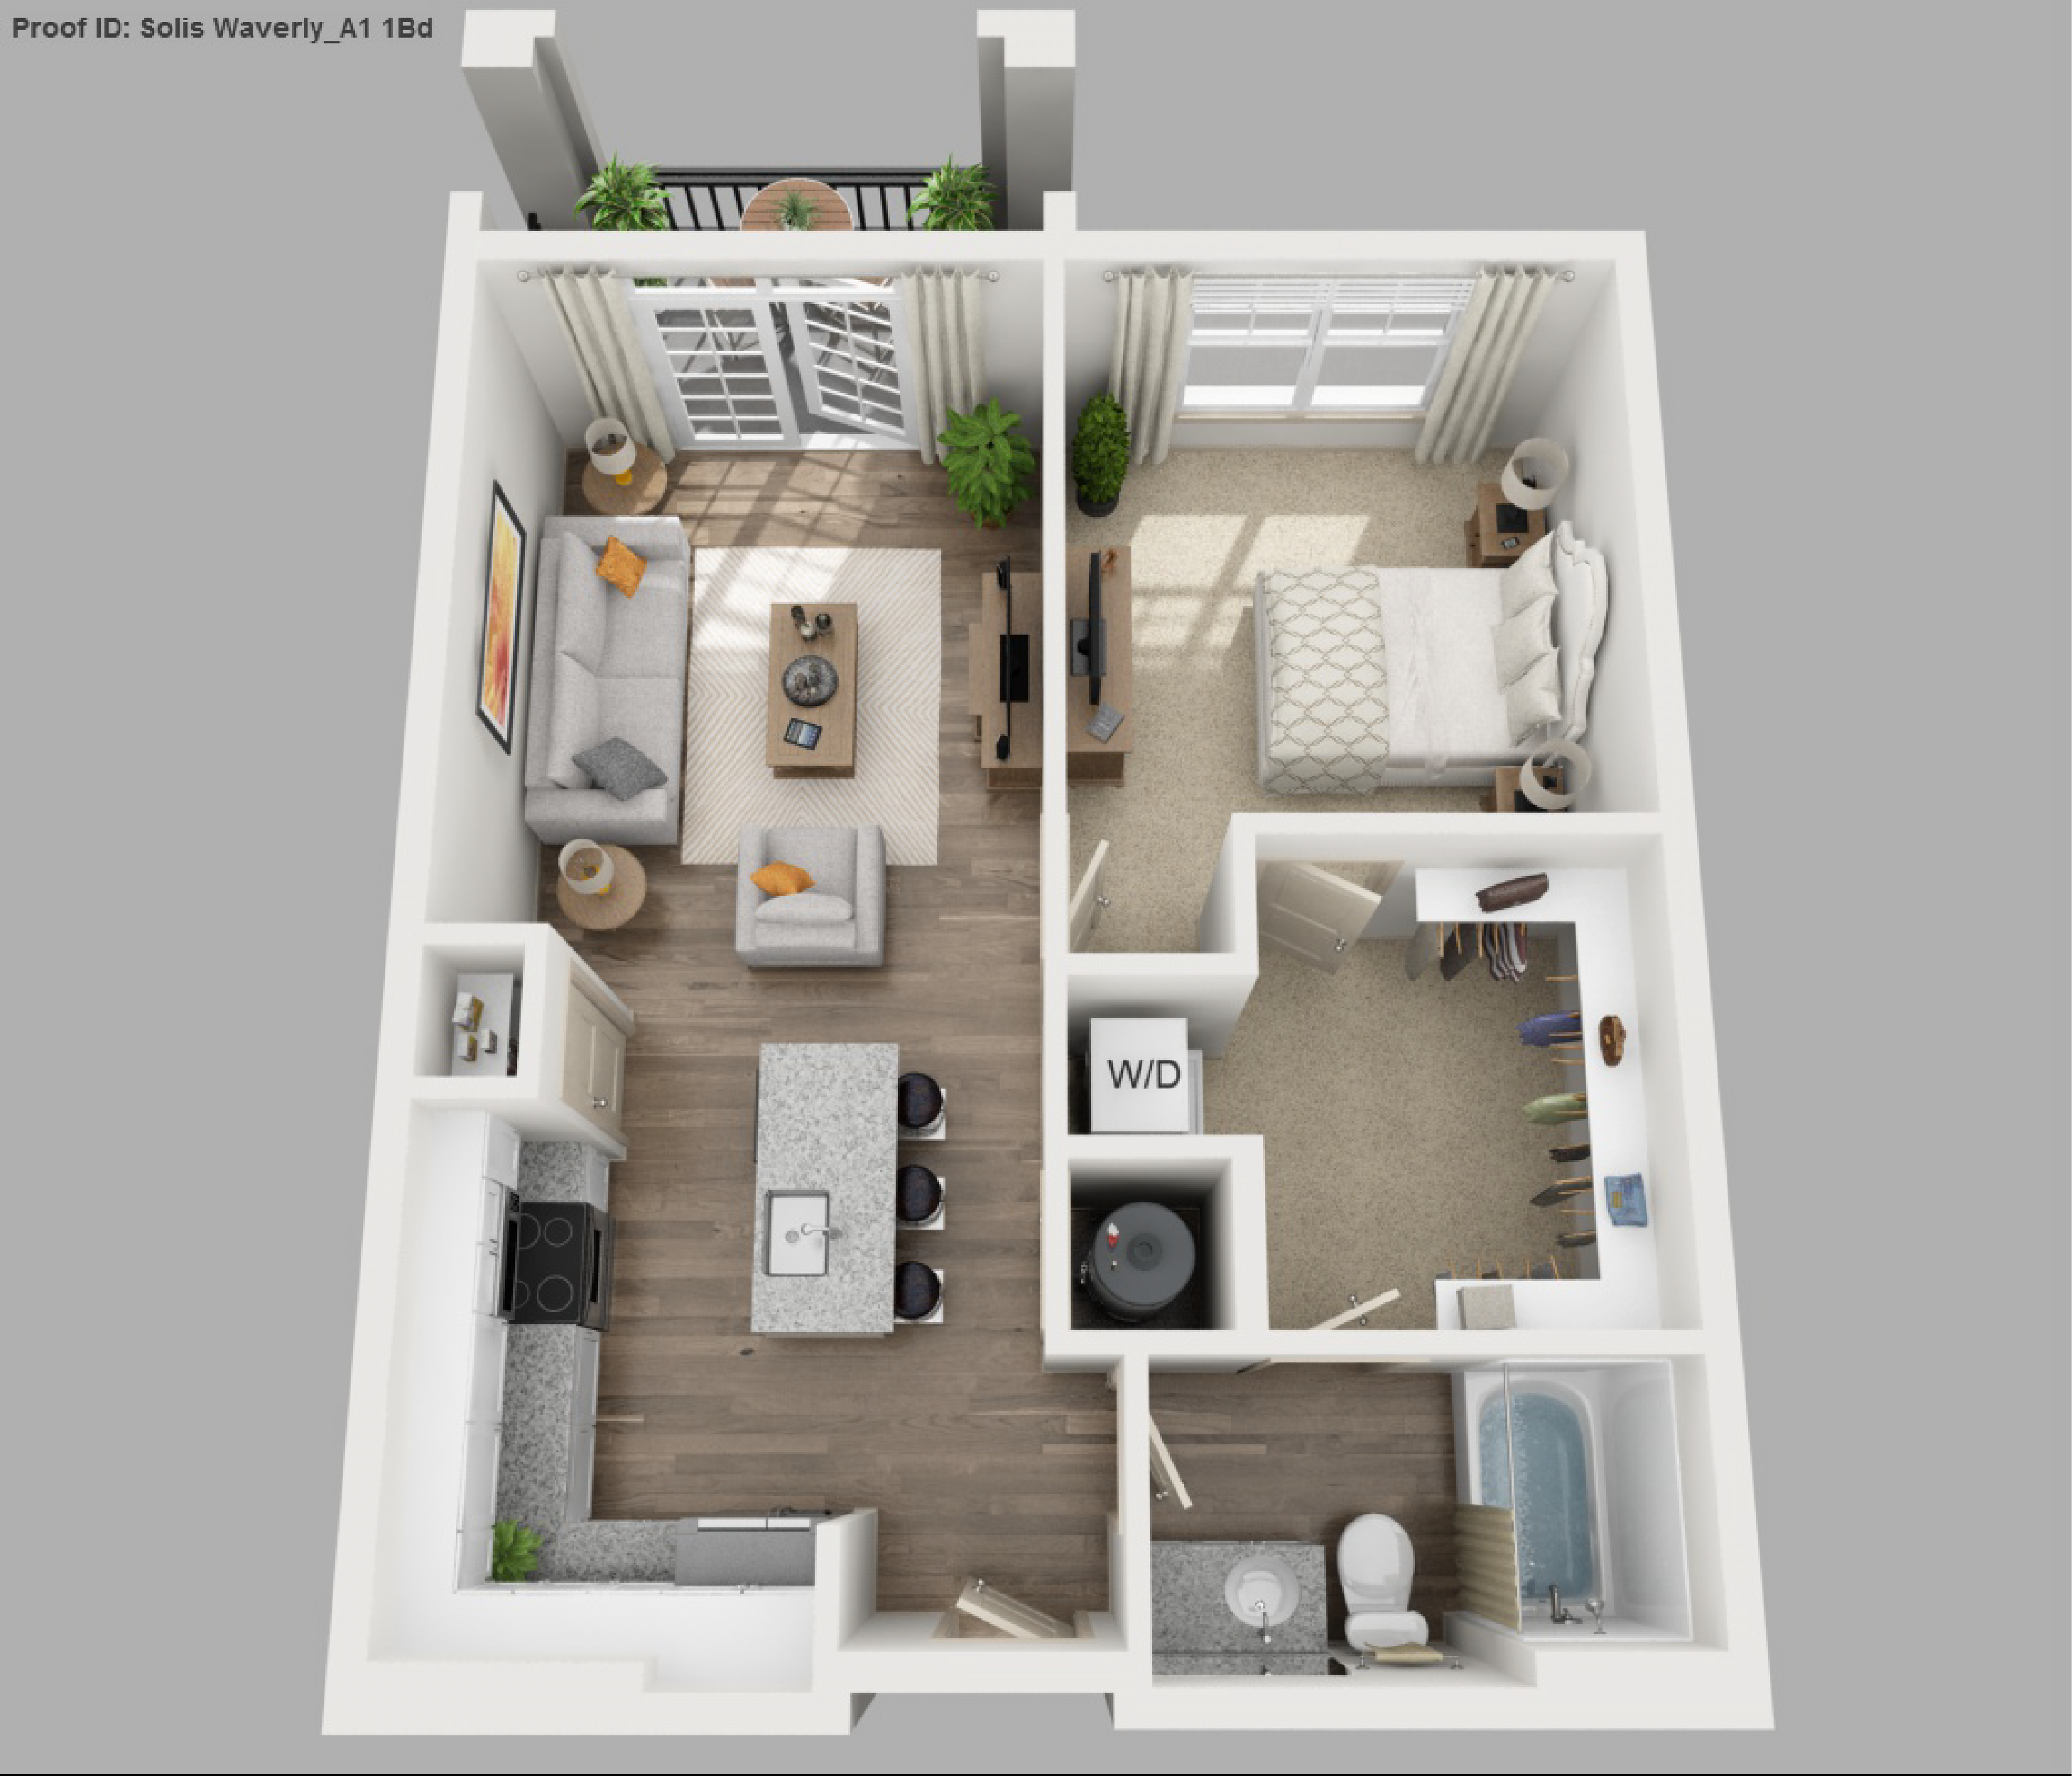 Solis apartments floorplans waverly for Apartments layout